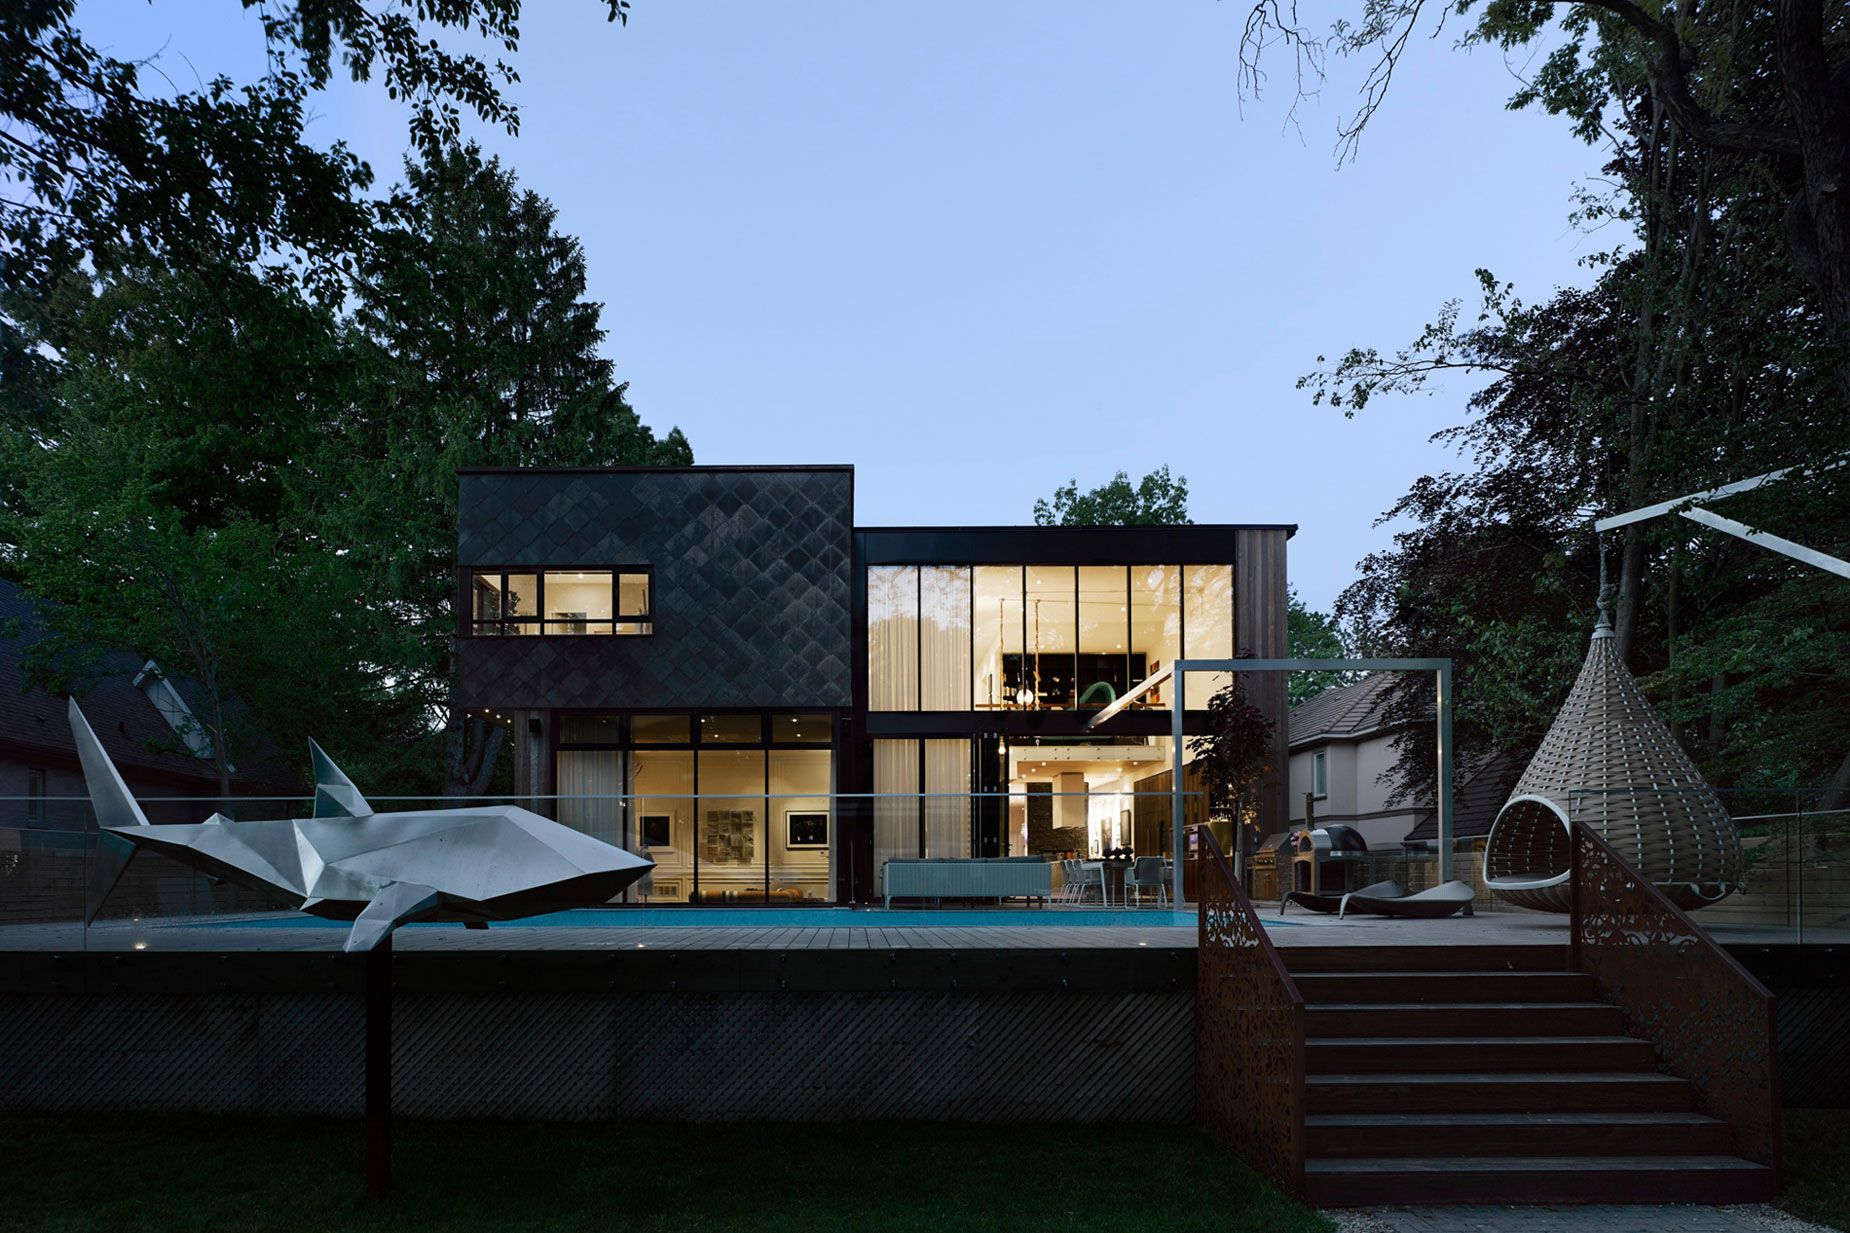 Aldo House By Prototype Design Lab